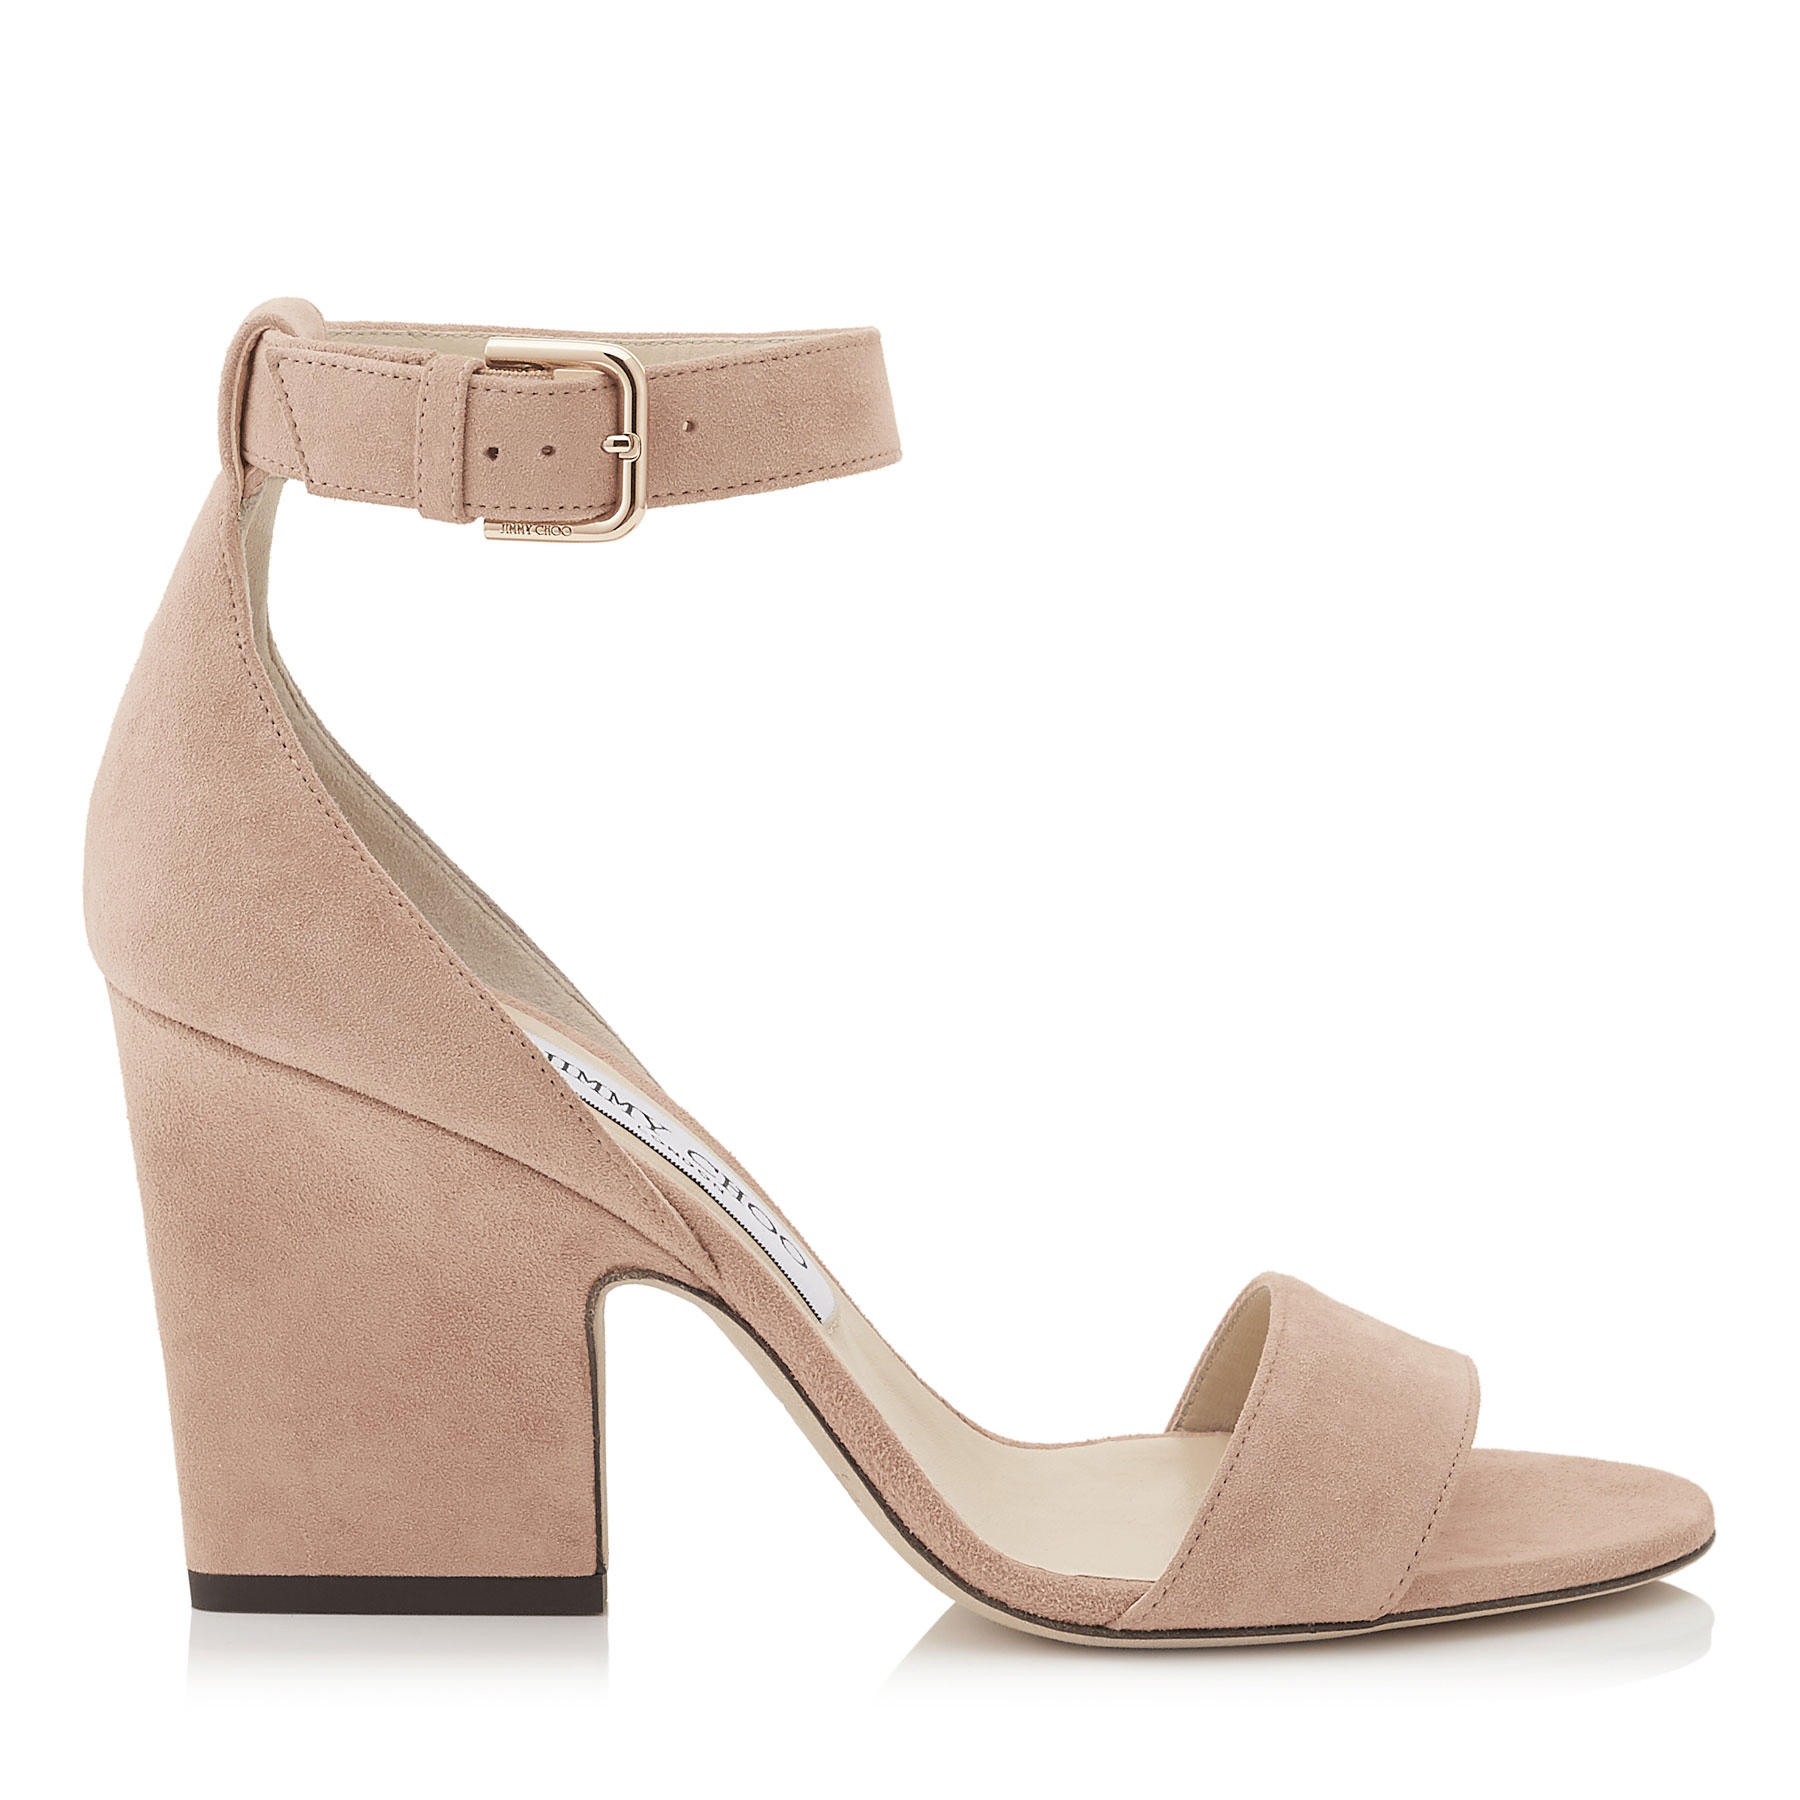 EDINA 85 Ballet Pink Suede Wedges by Jimmy Choo